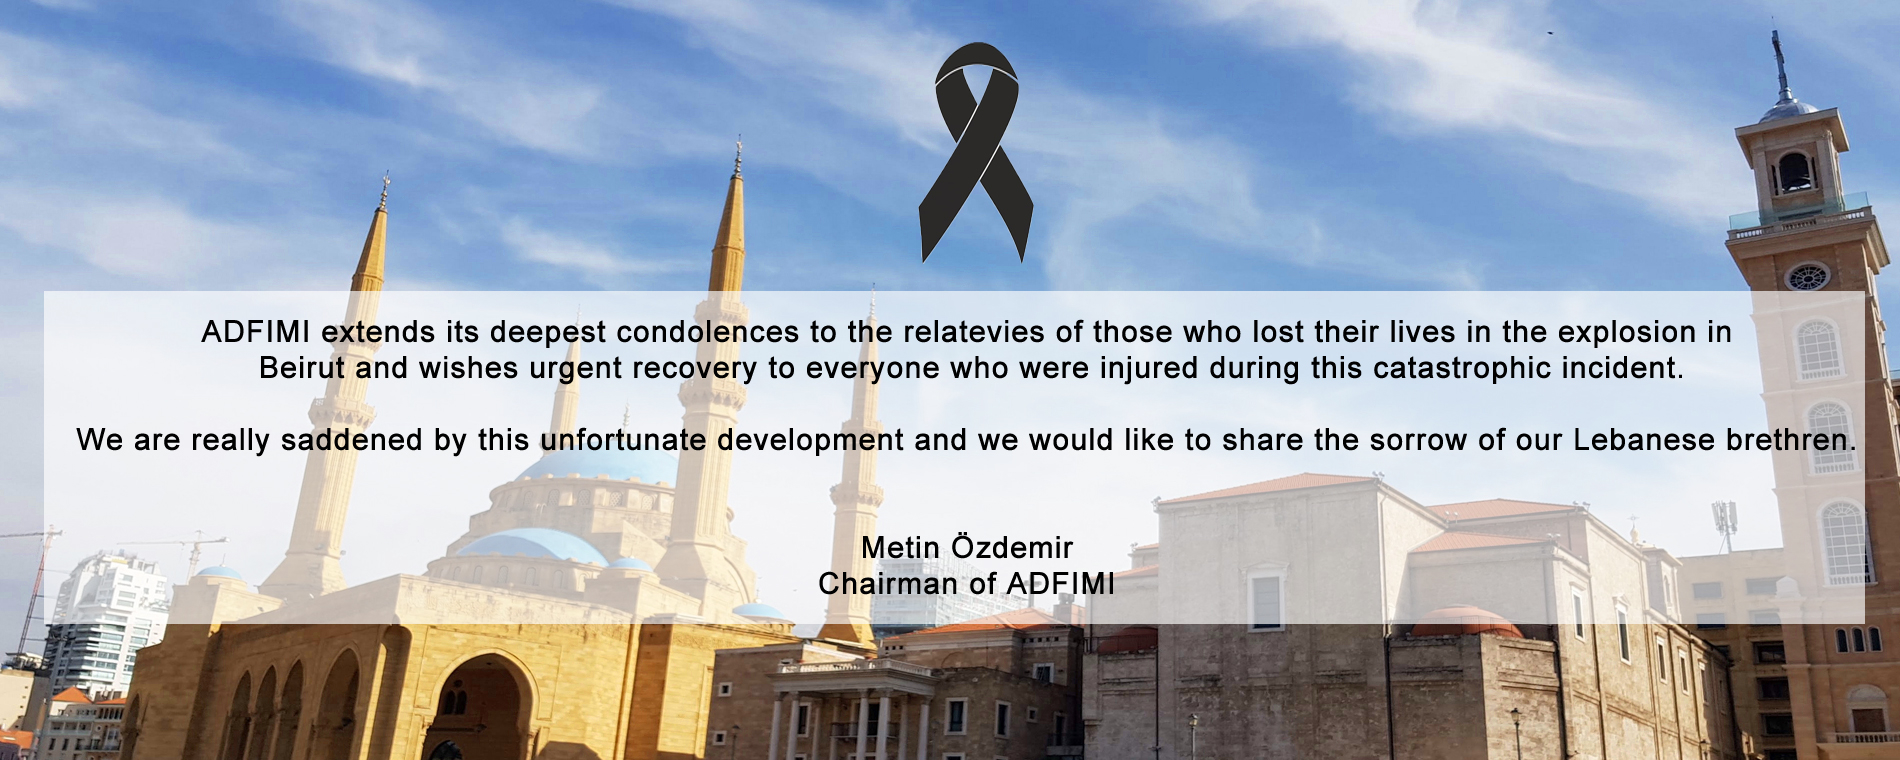 ADFIMI extends its deepest condolences for explosion in Beirut